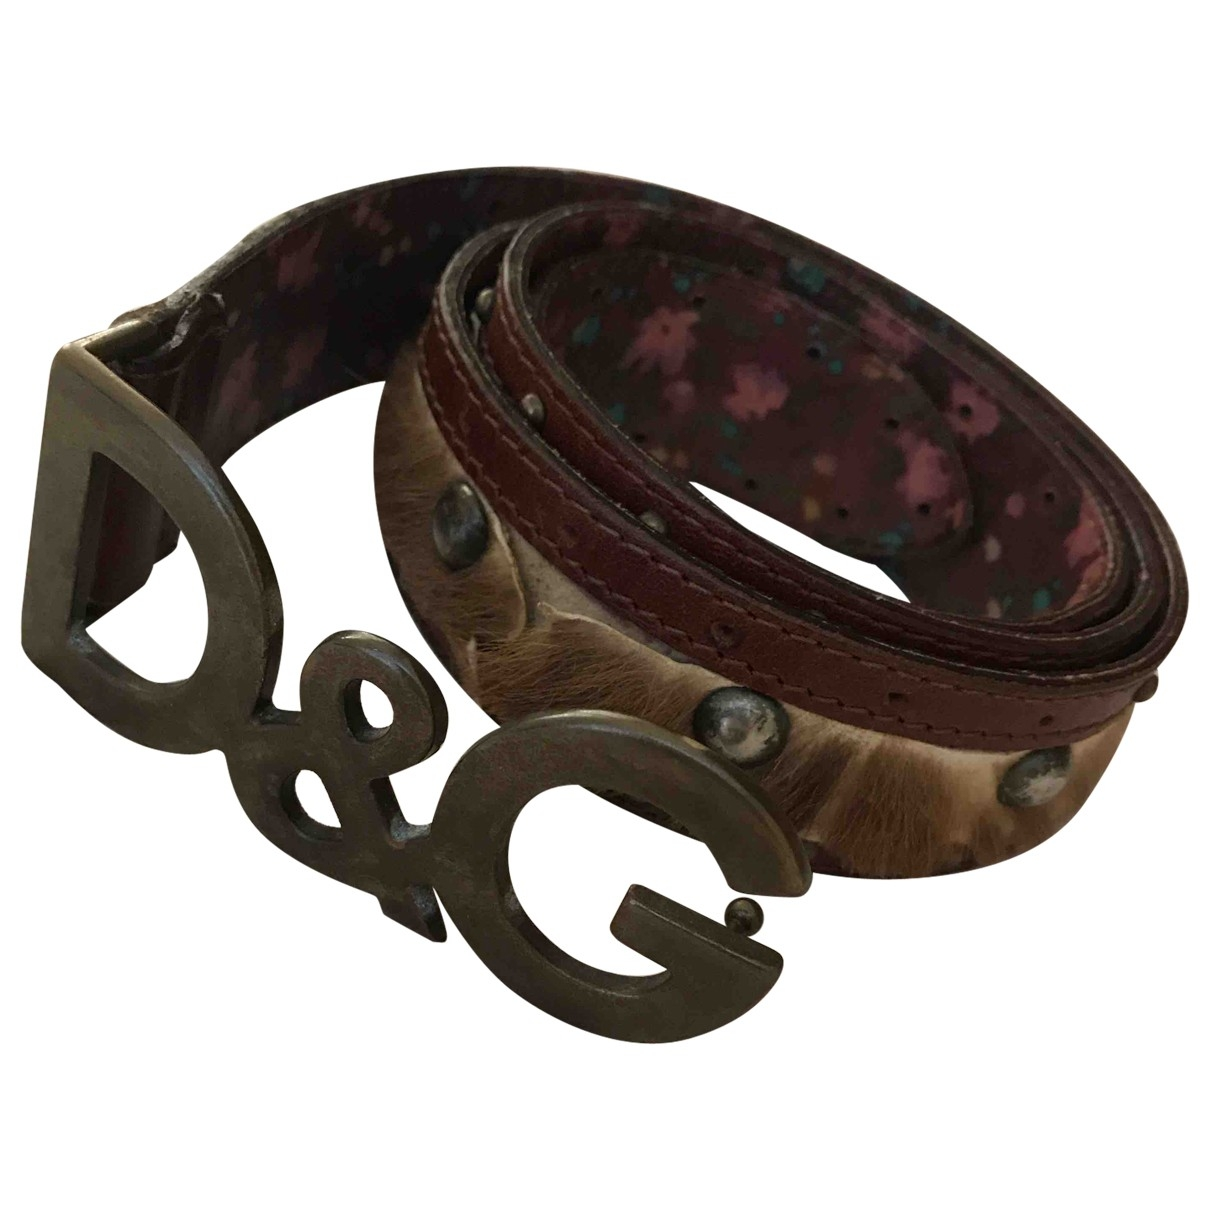 D&g \N Brown Leather belt for Women M International